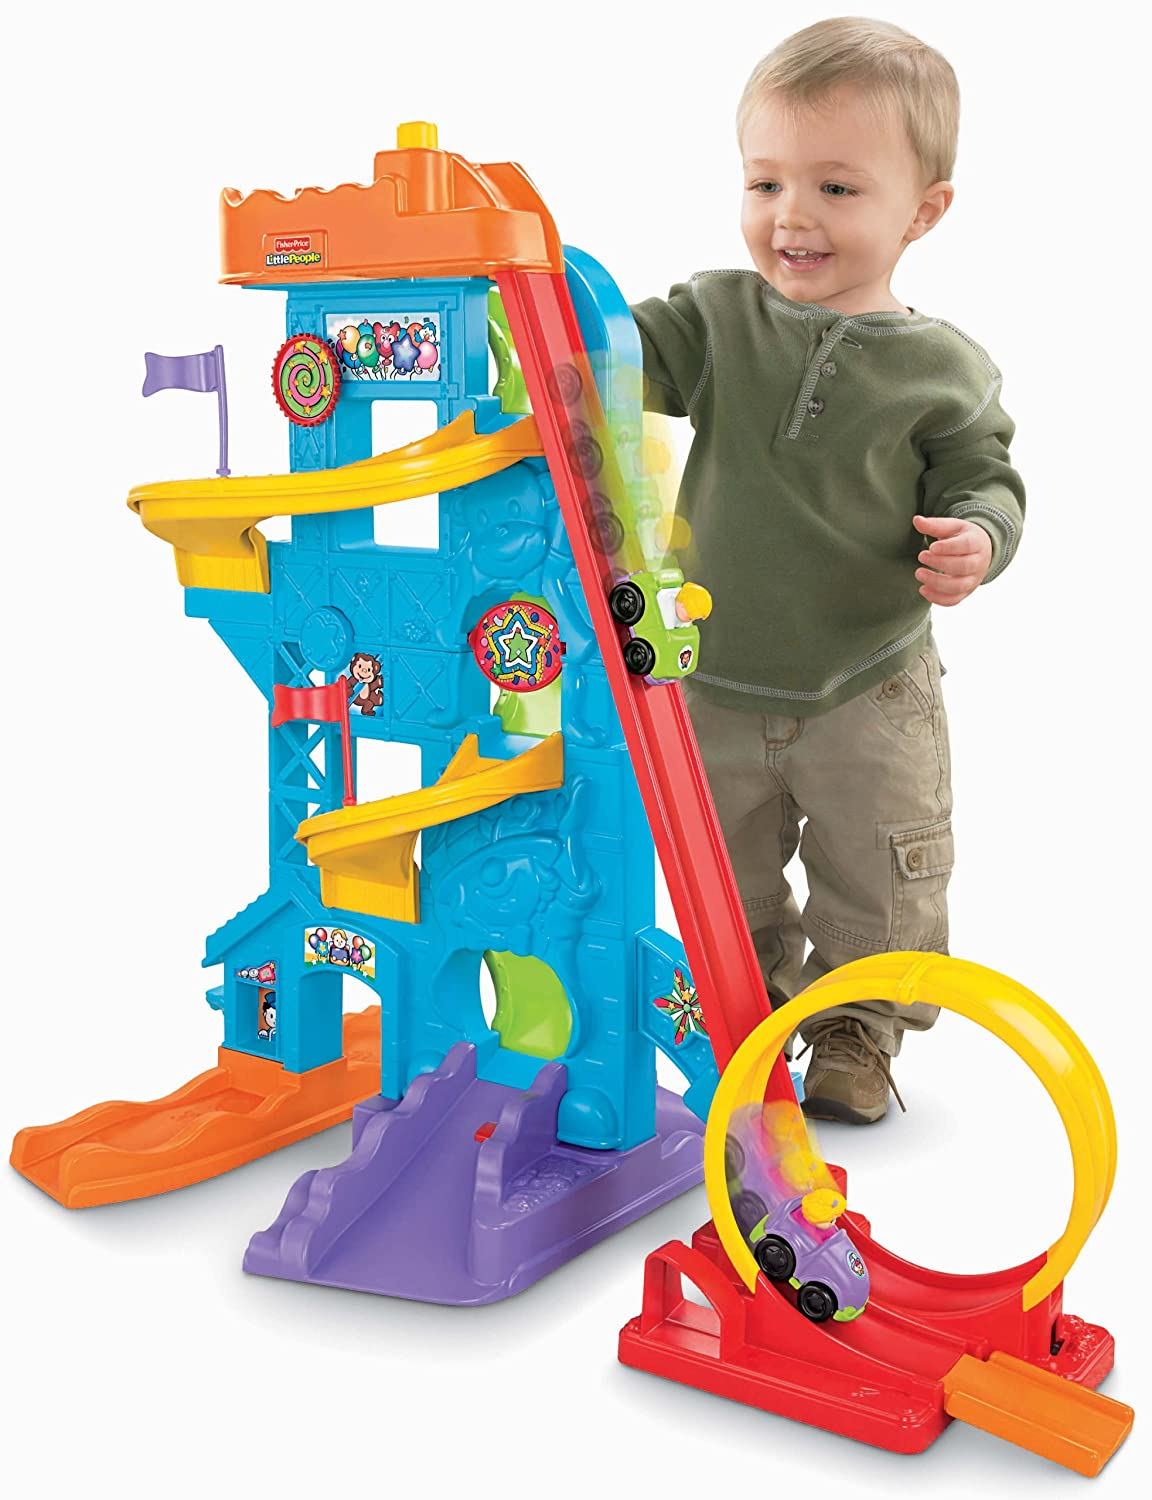 Best Little People Toys : Best gifts for year old boys in itsy bitsy fun